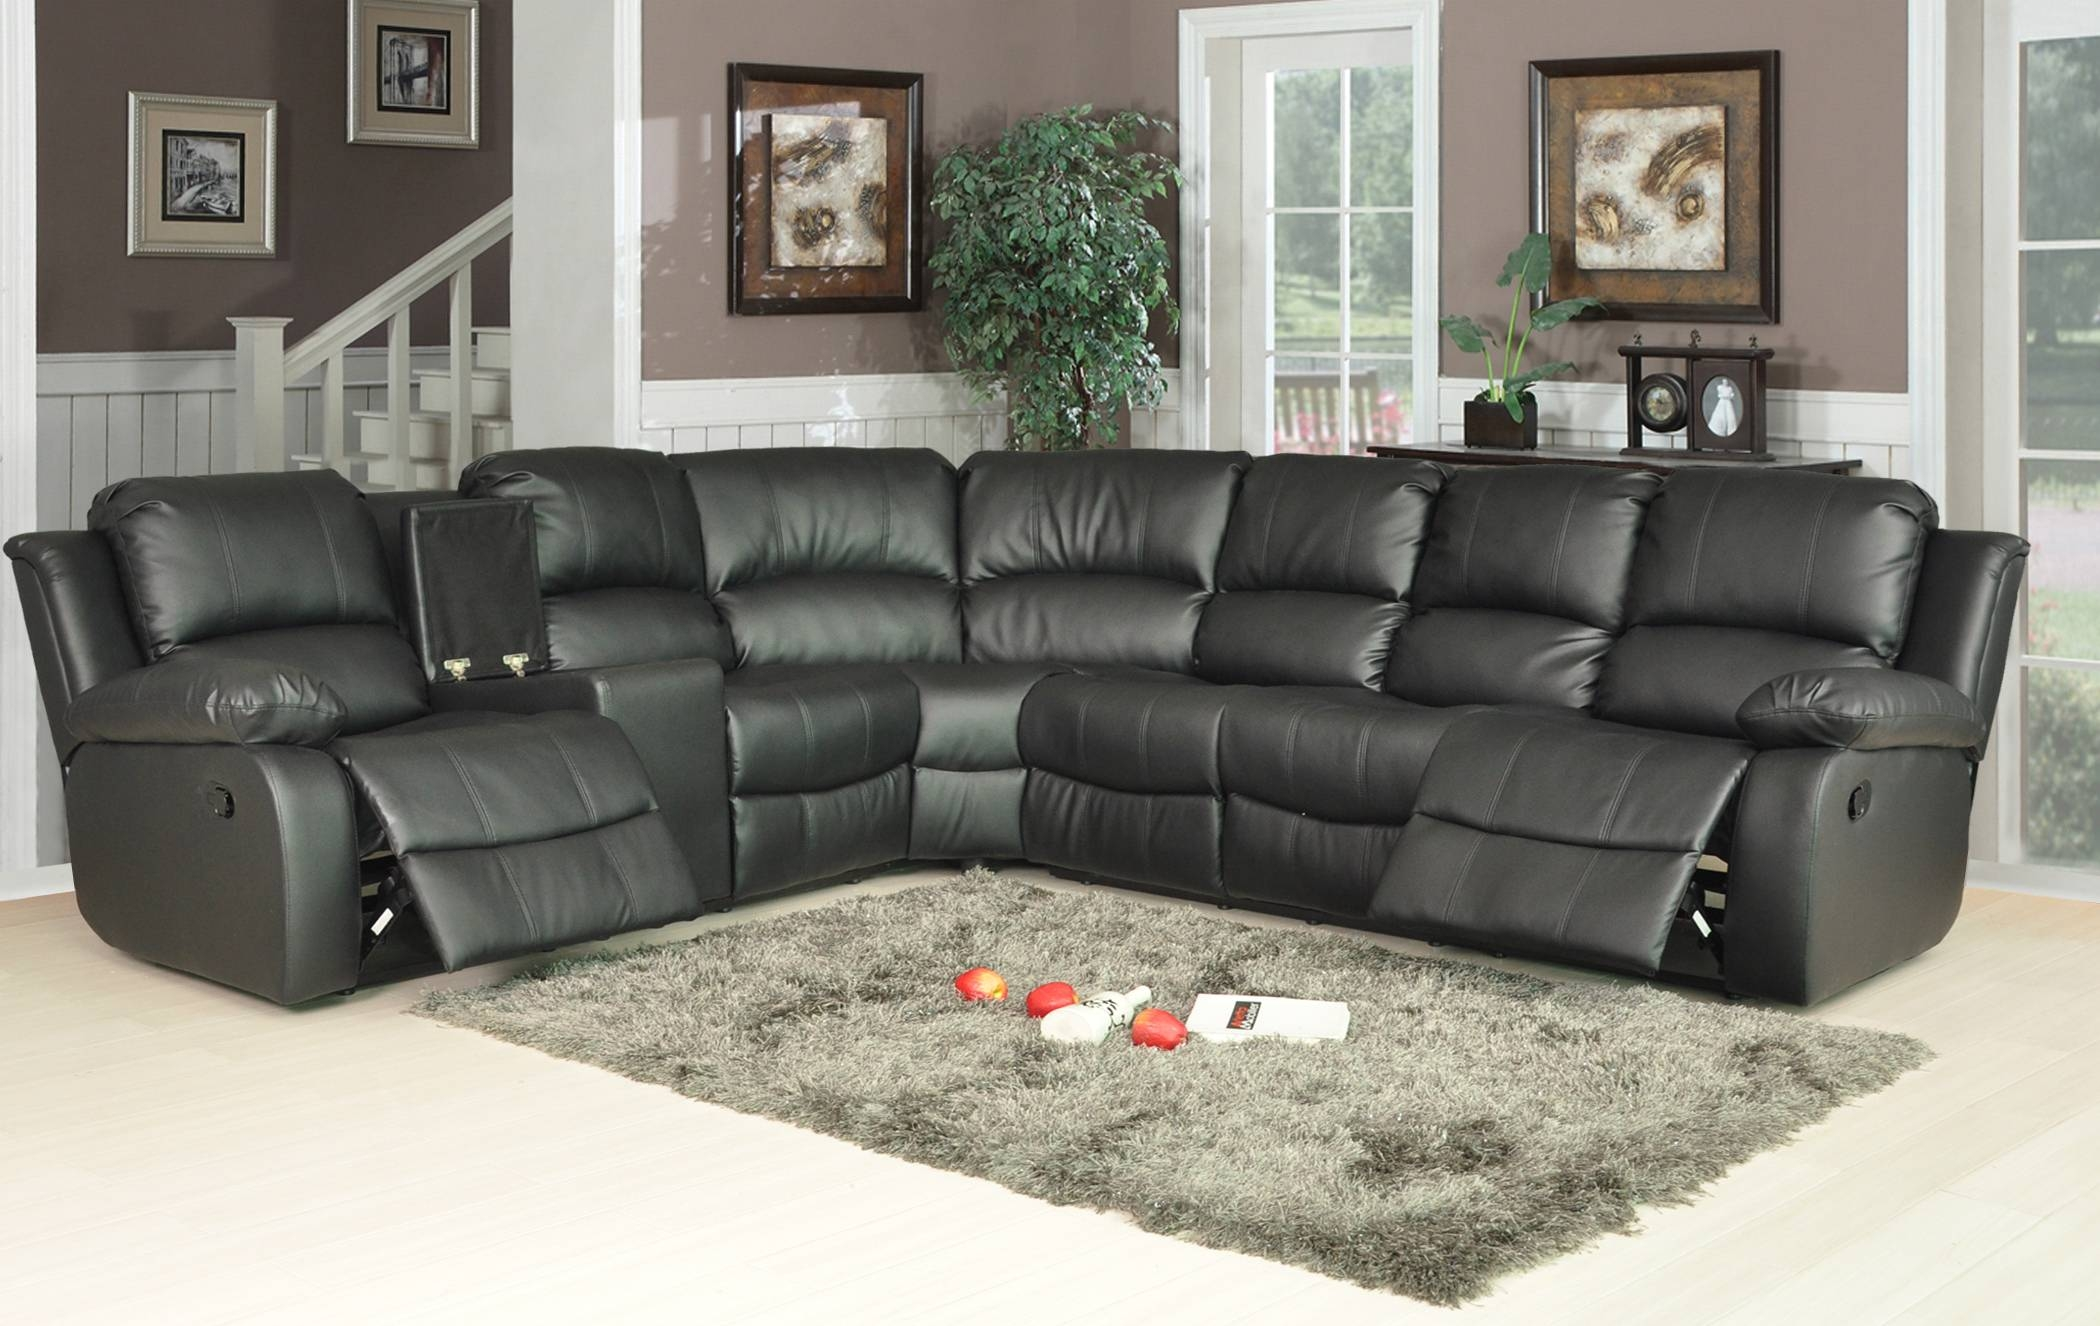 Leather Corner Sofas Groups In A Range Of Styles Entrancing inside Leather Corner Sofas (Image 21 of 30)